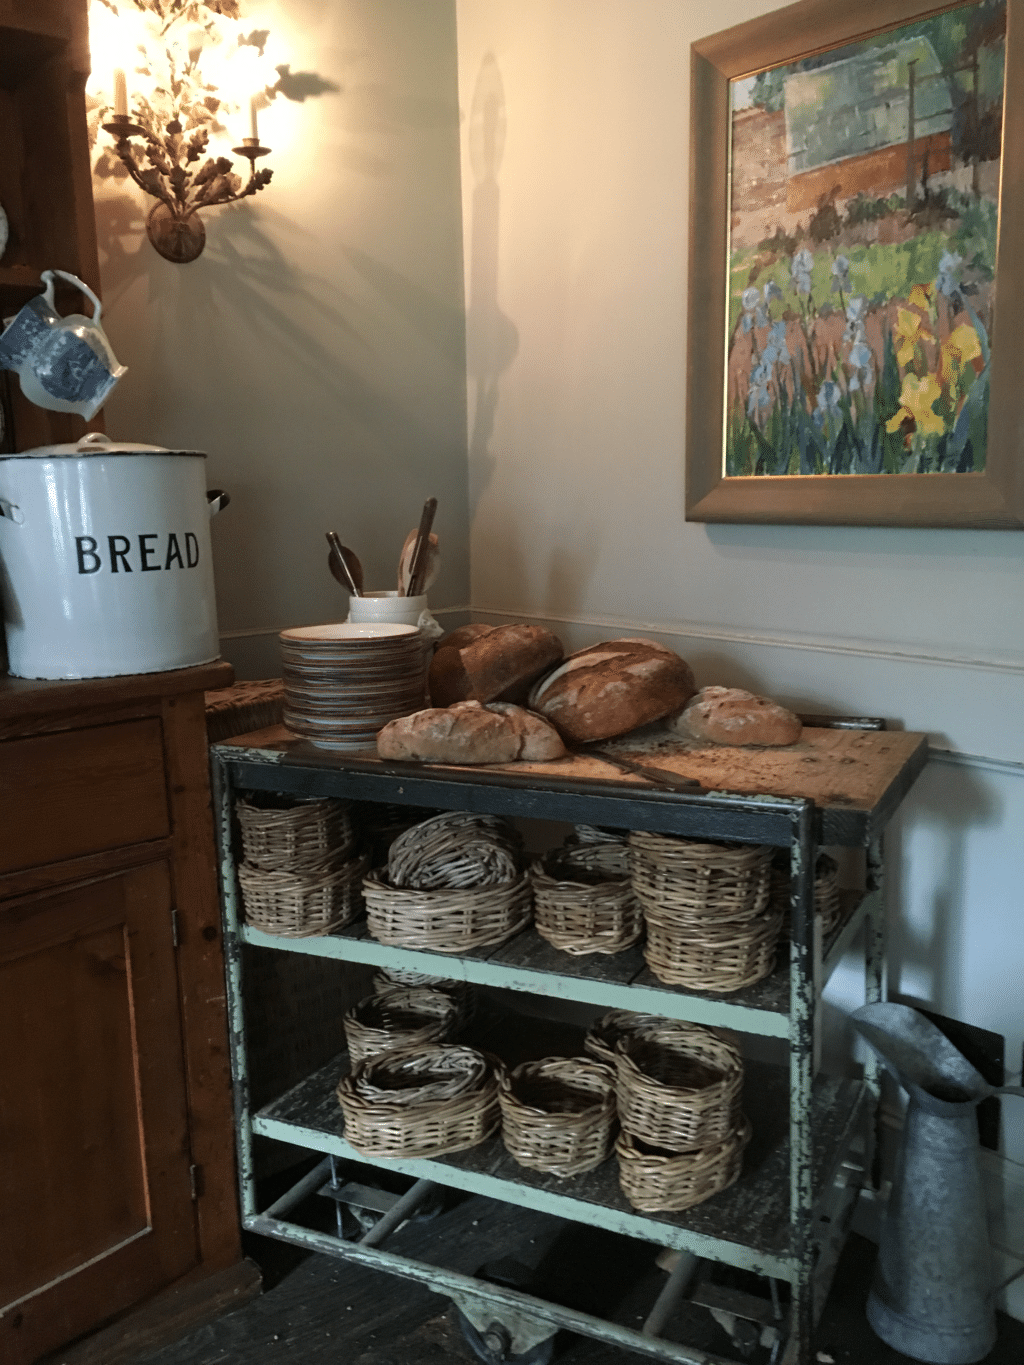 The Pig near Bath, bread trolley